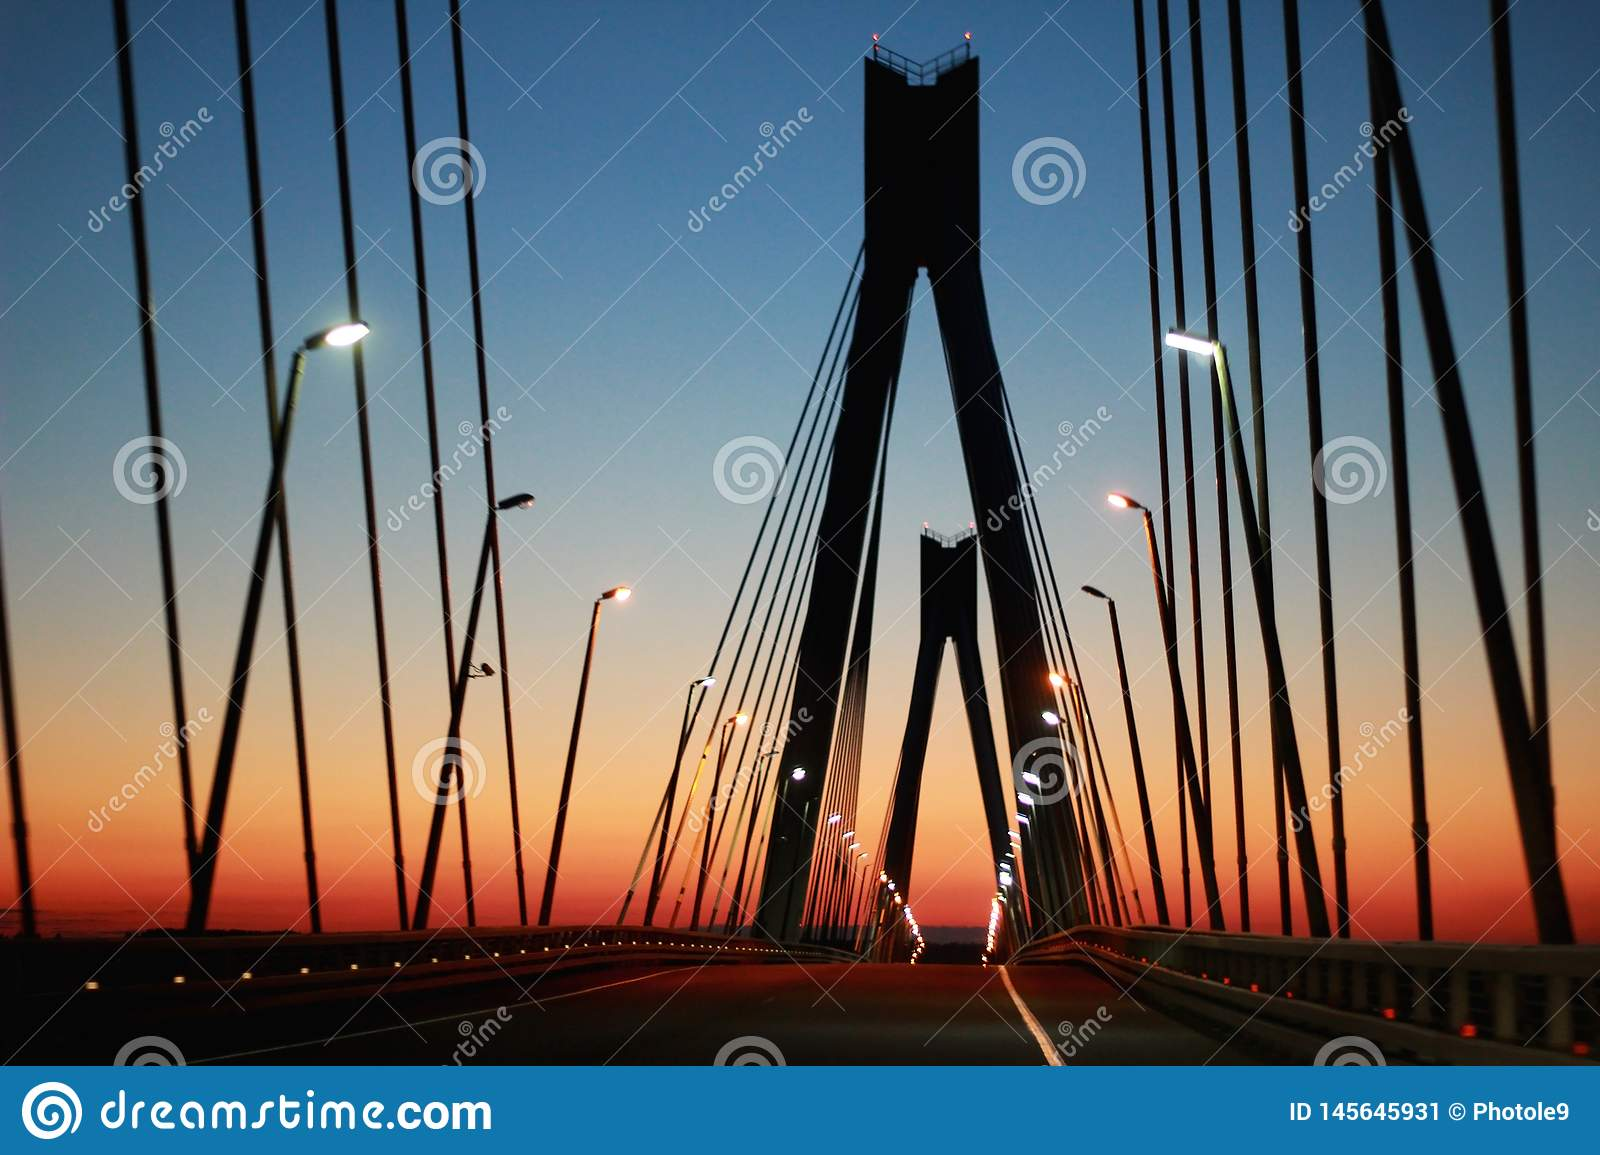 The silhouette of the bridge against the evening sky